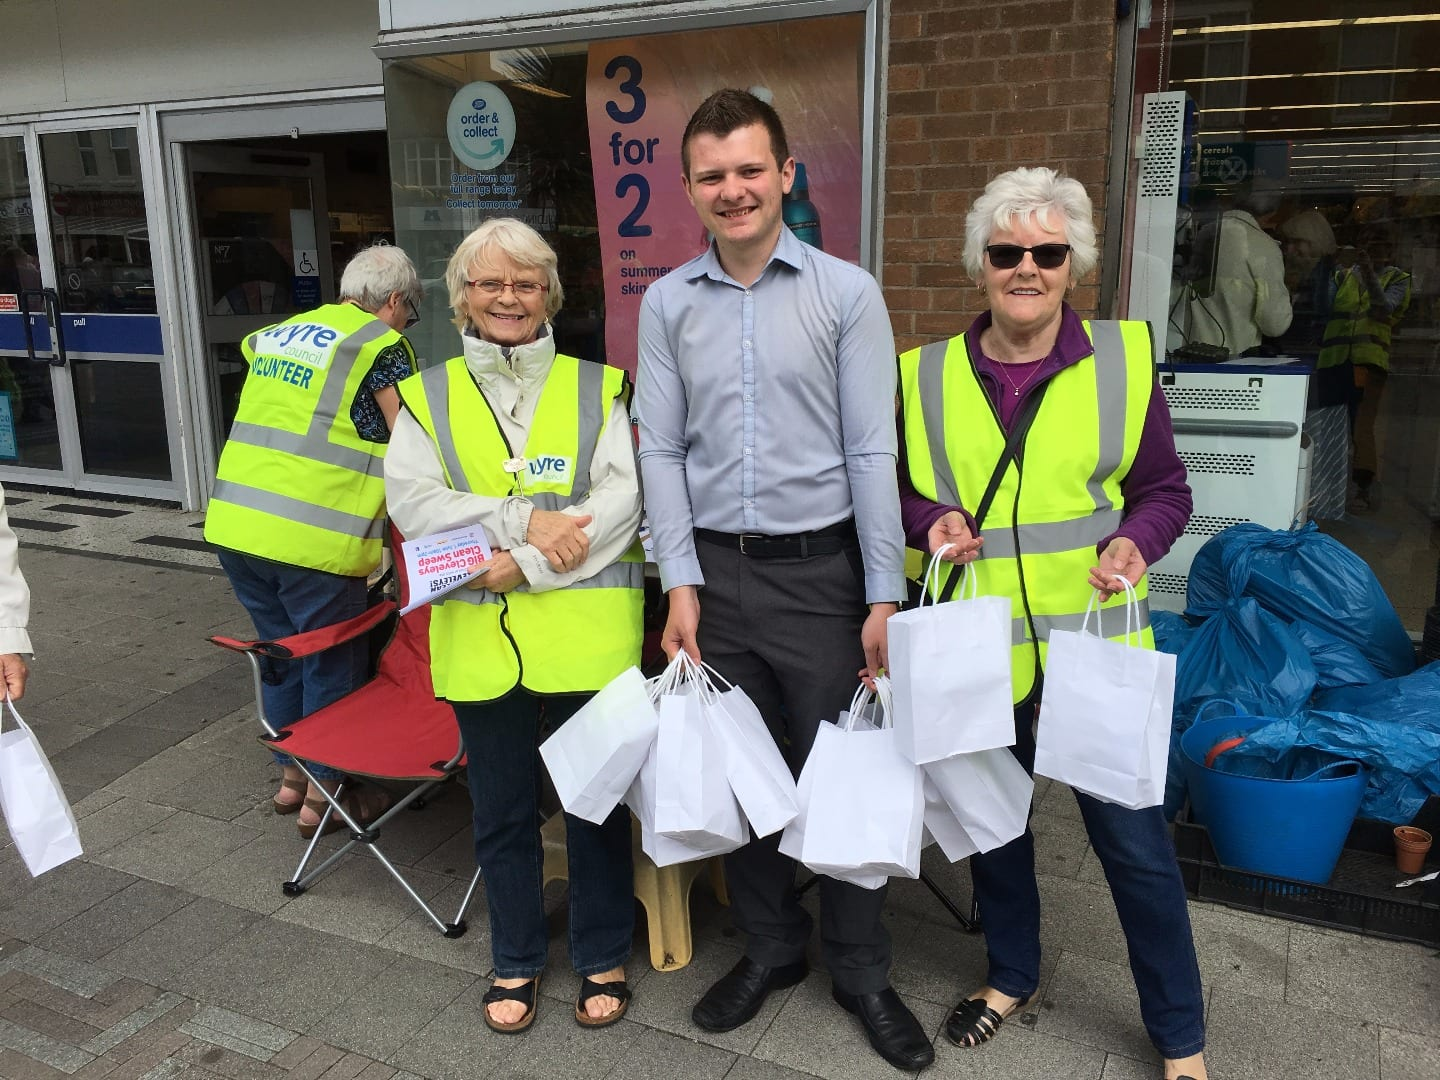 Volunteers handing out information and surveys along with Tom Walsh delivering lunch from The Venue. Cleveleys Coastal Community Team updates